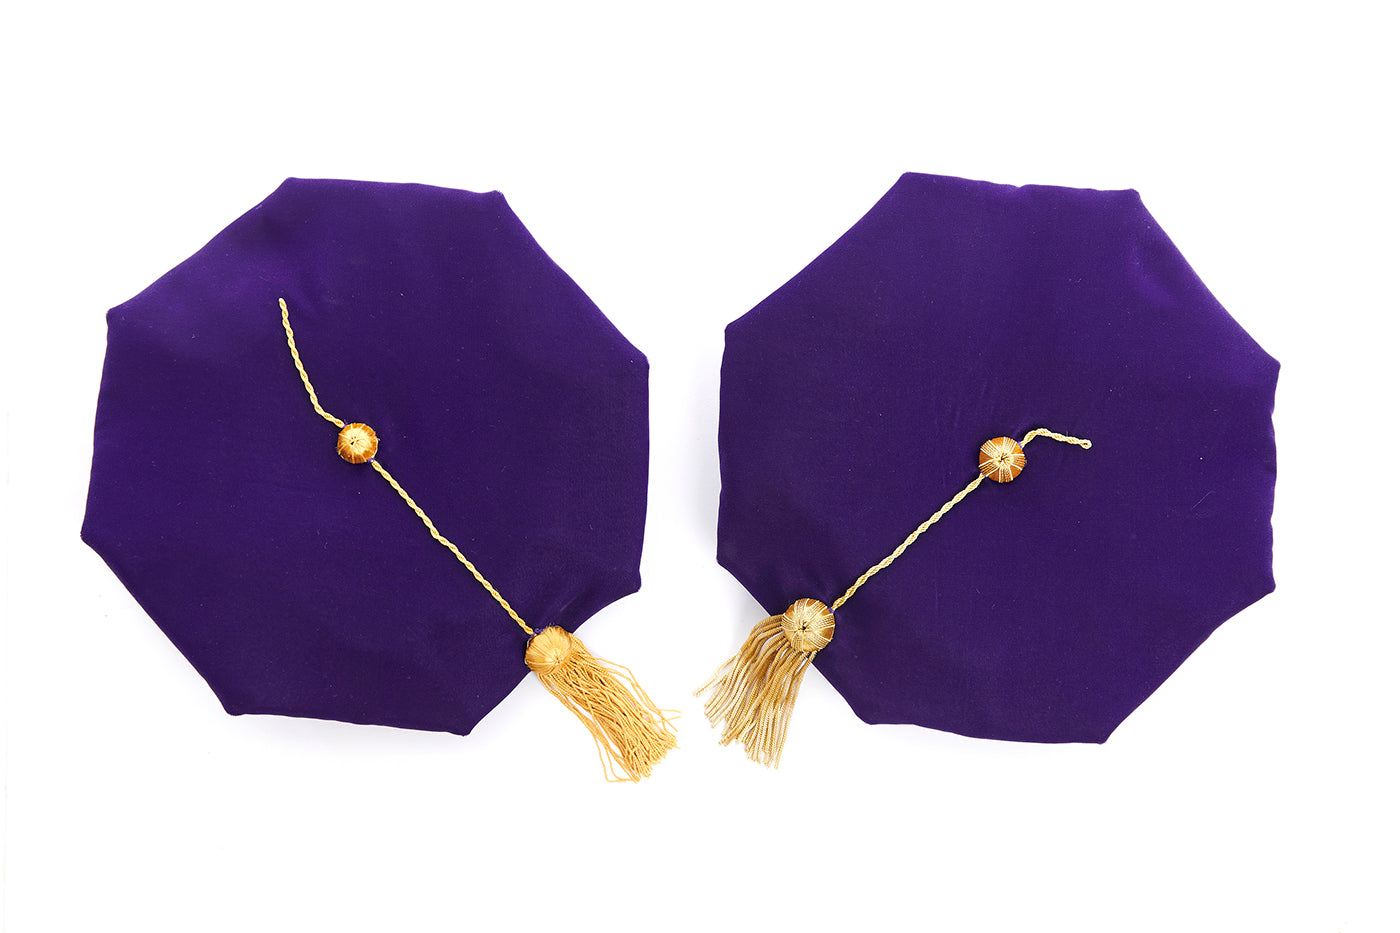 University of Washington 8-Sided Purple Velvet Doctoral Tam (Cap) with Choice of Tassel